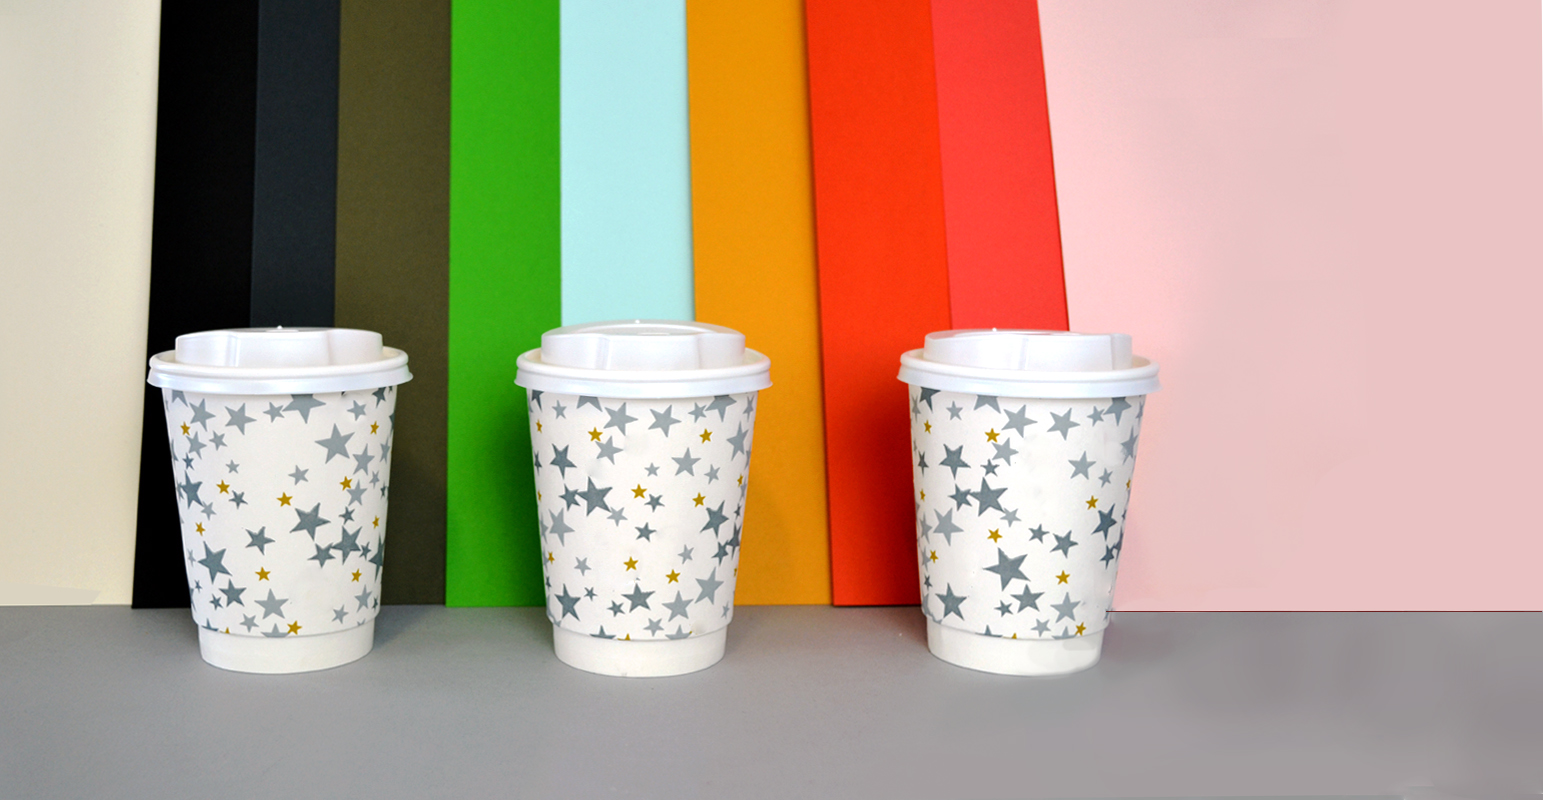 Introducing - Paper Made From Recycled Coffee Cups!